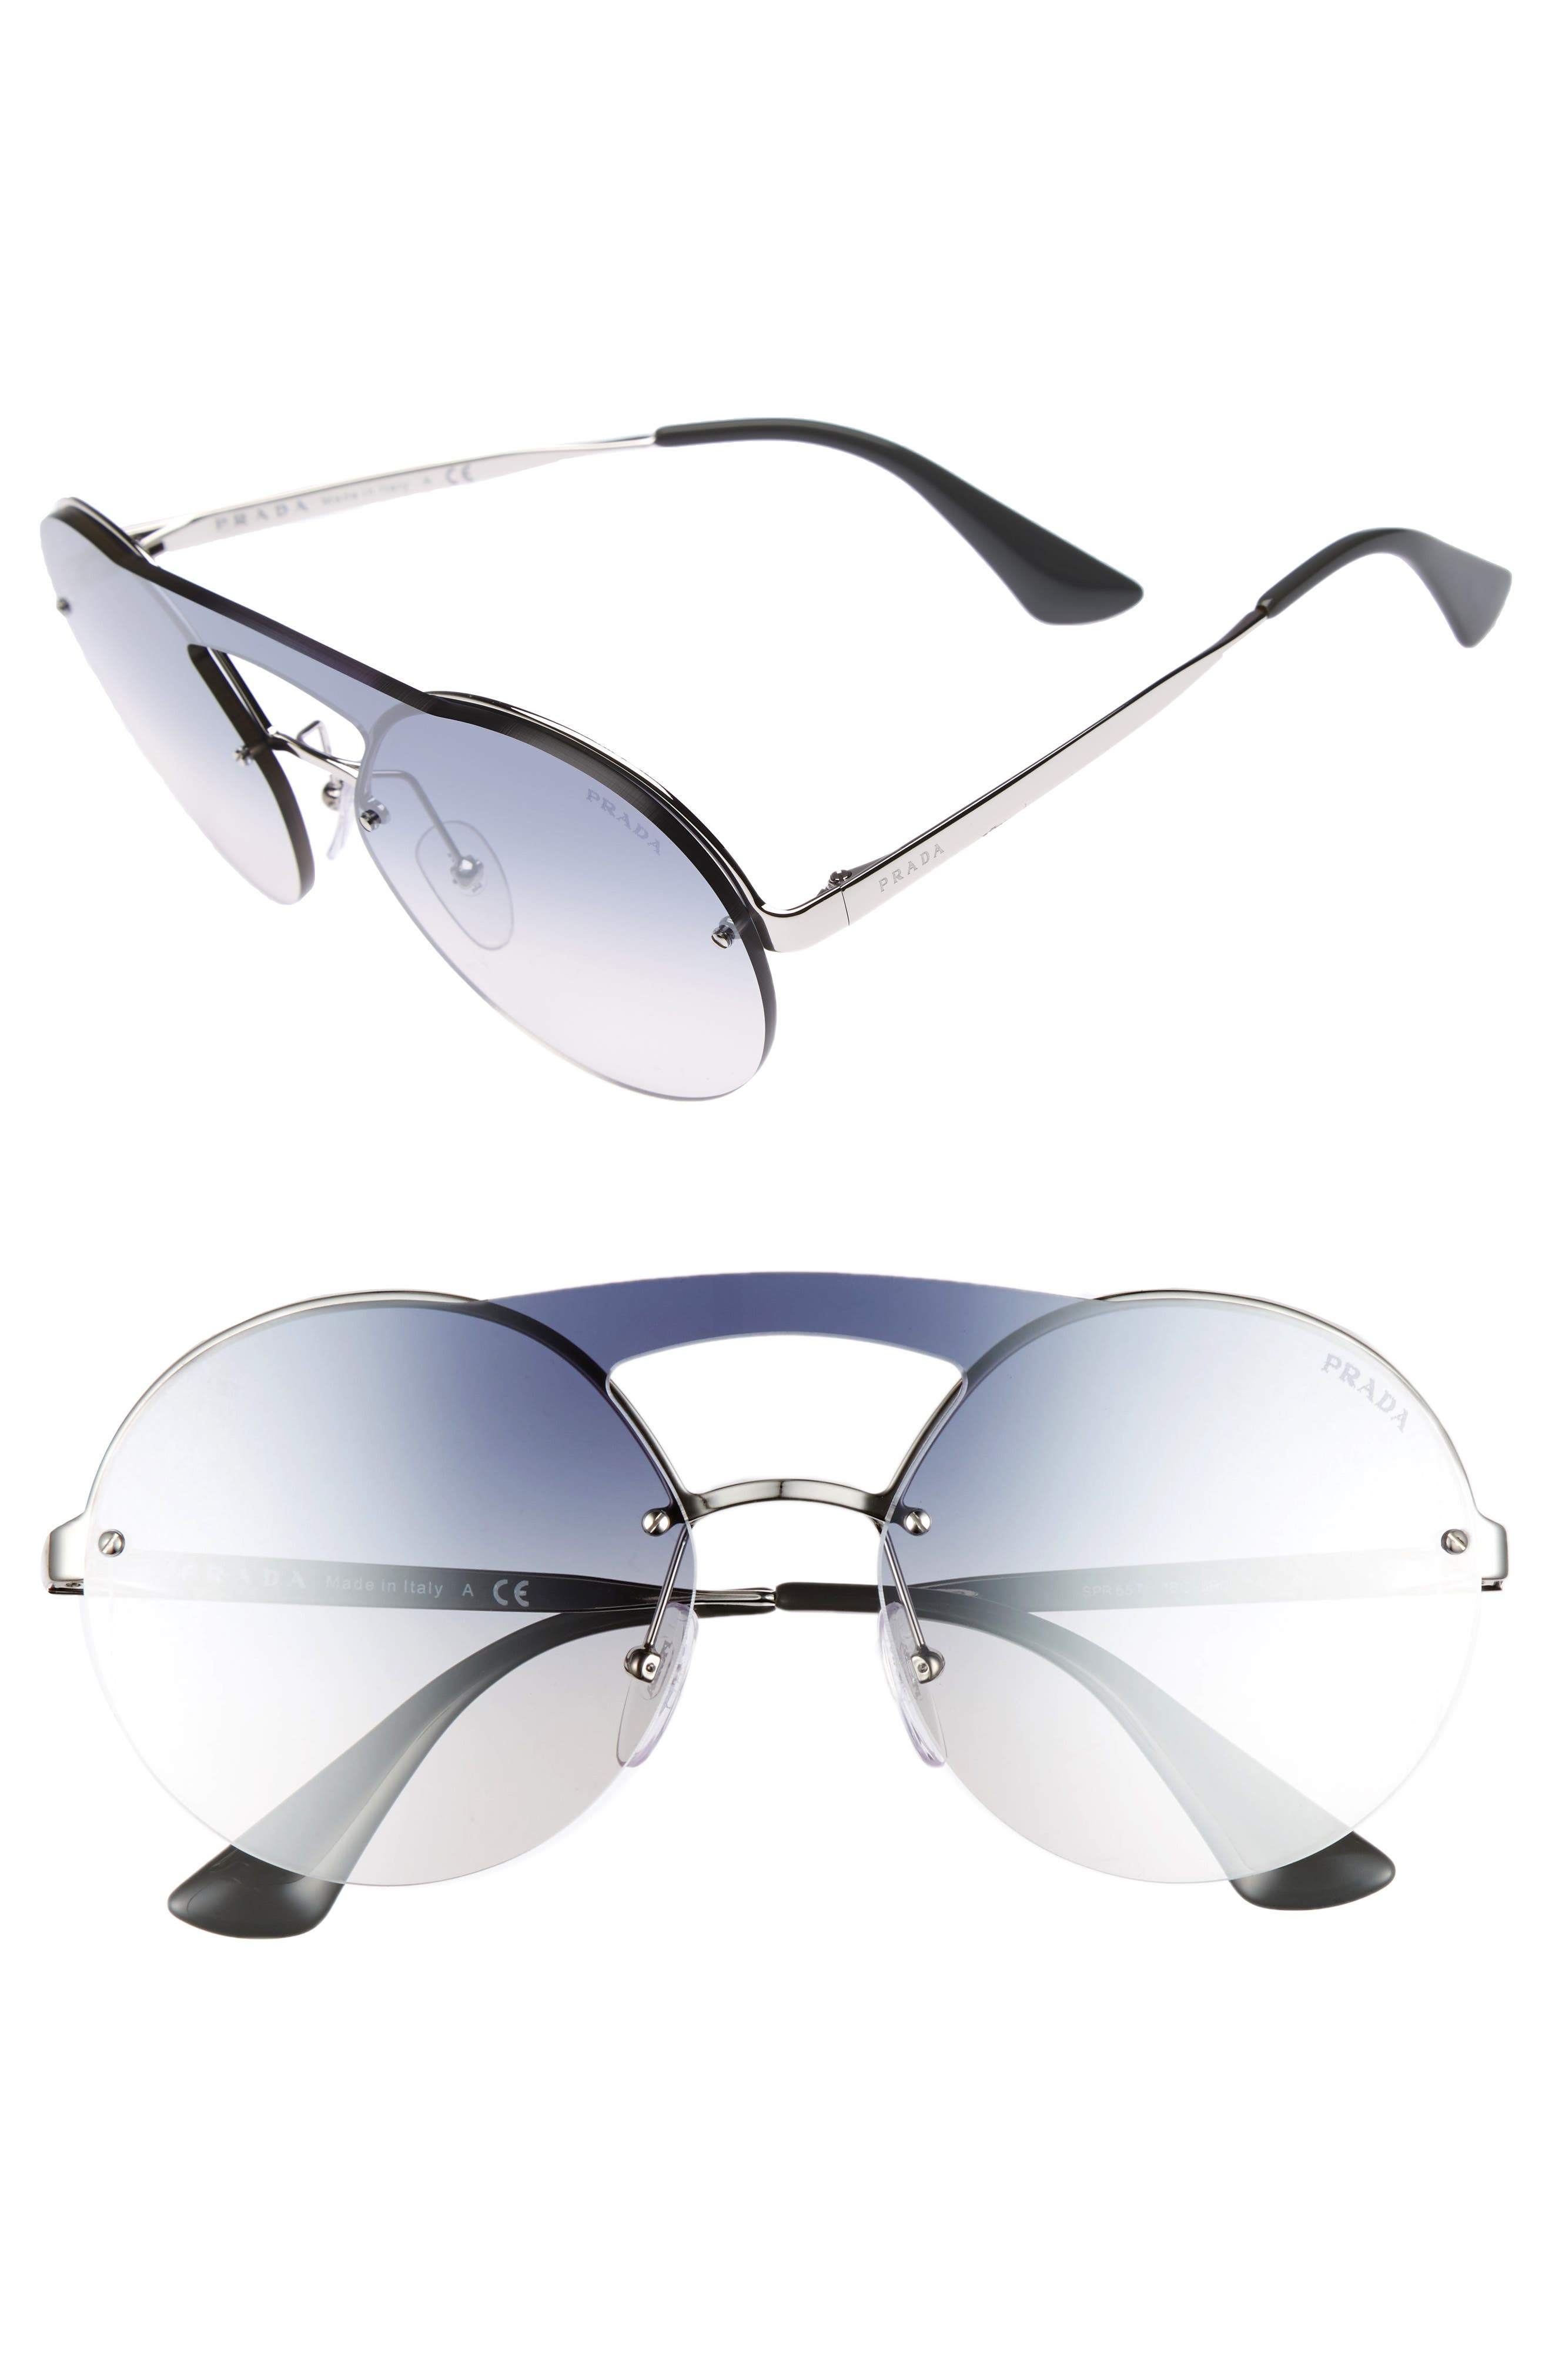 60mm Rimless Shield Sunglasses,                             Main thumbnail 1, color,                             Silver/ Blue